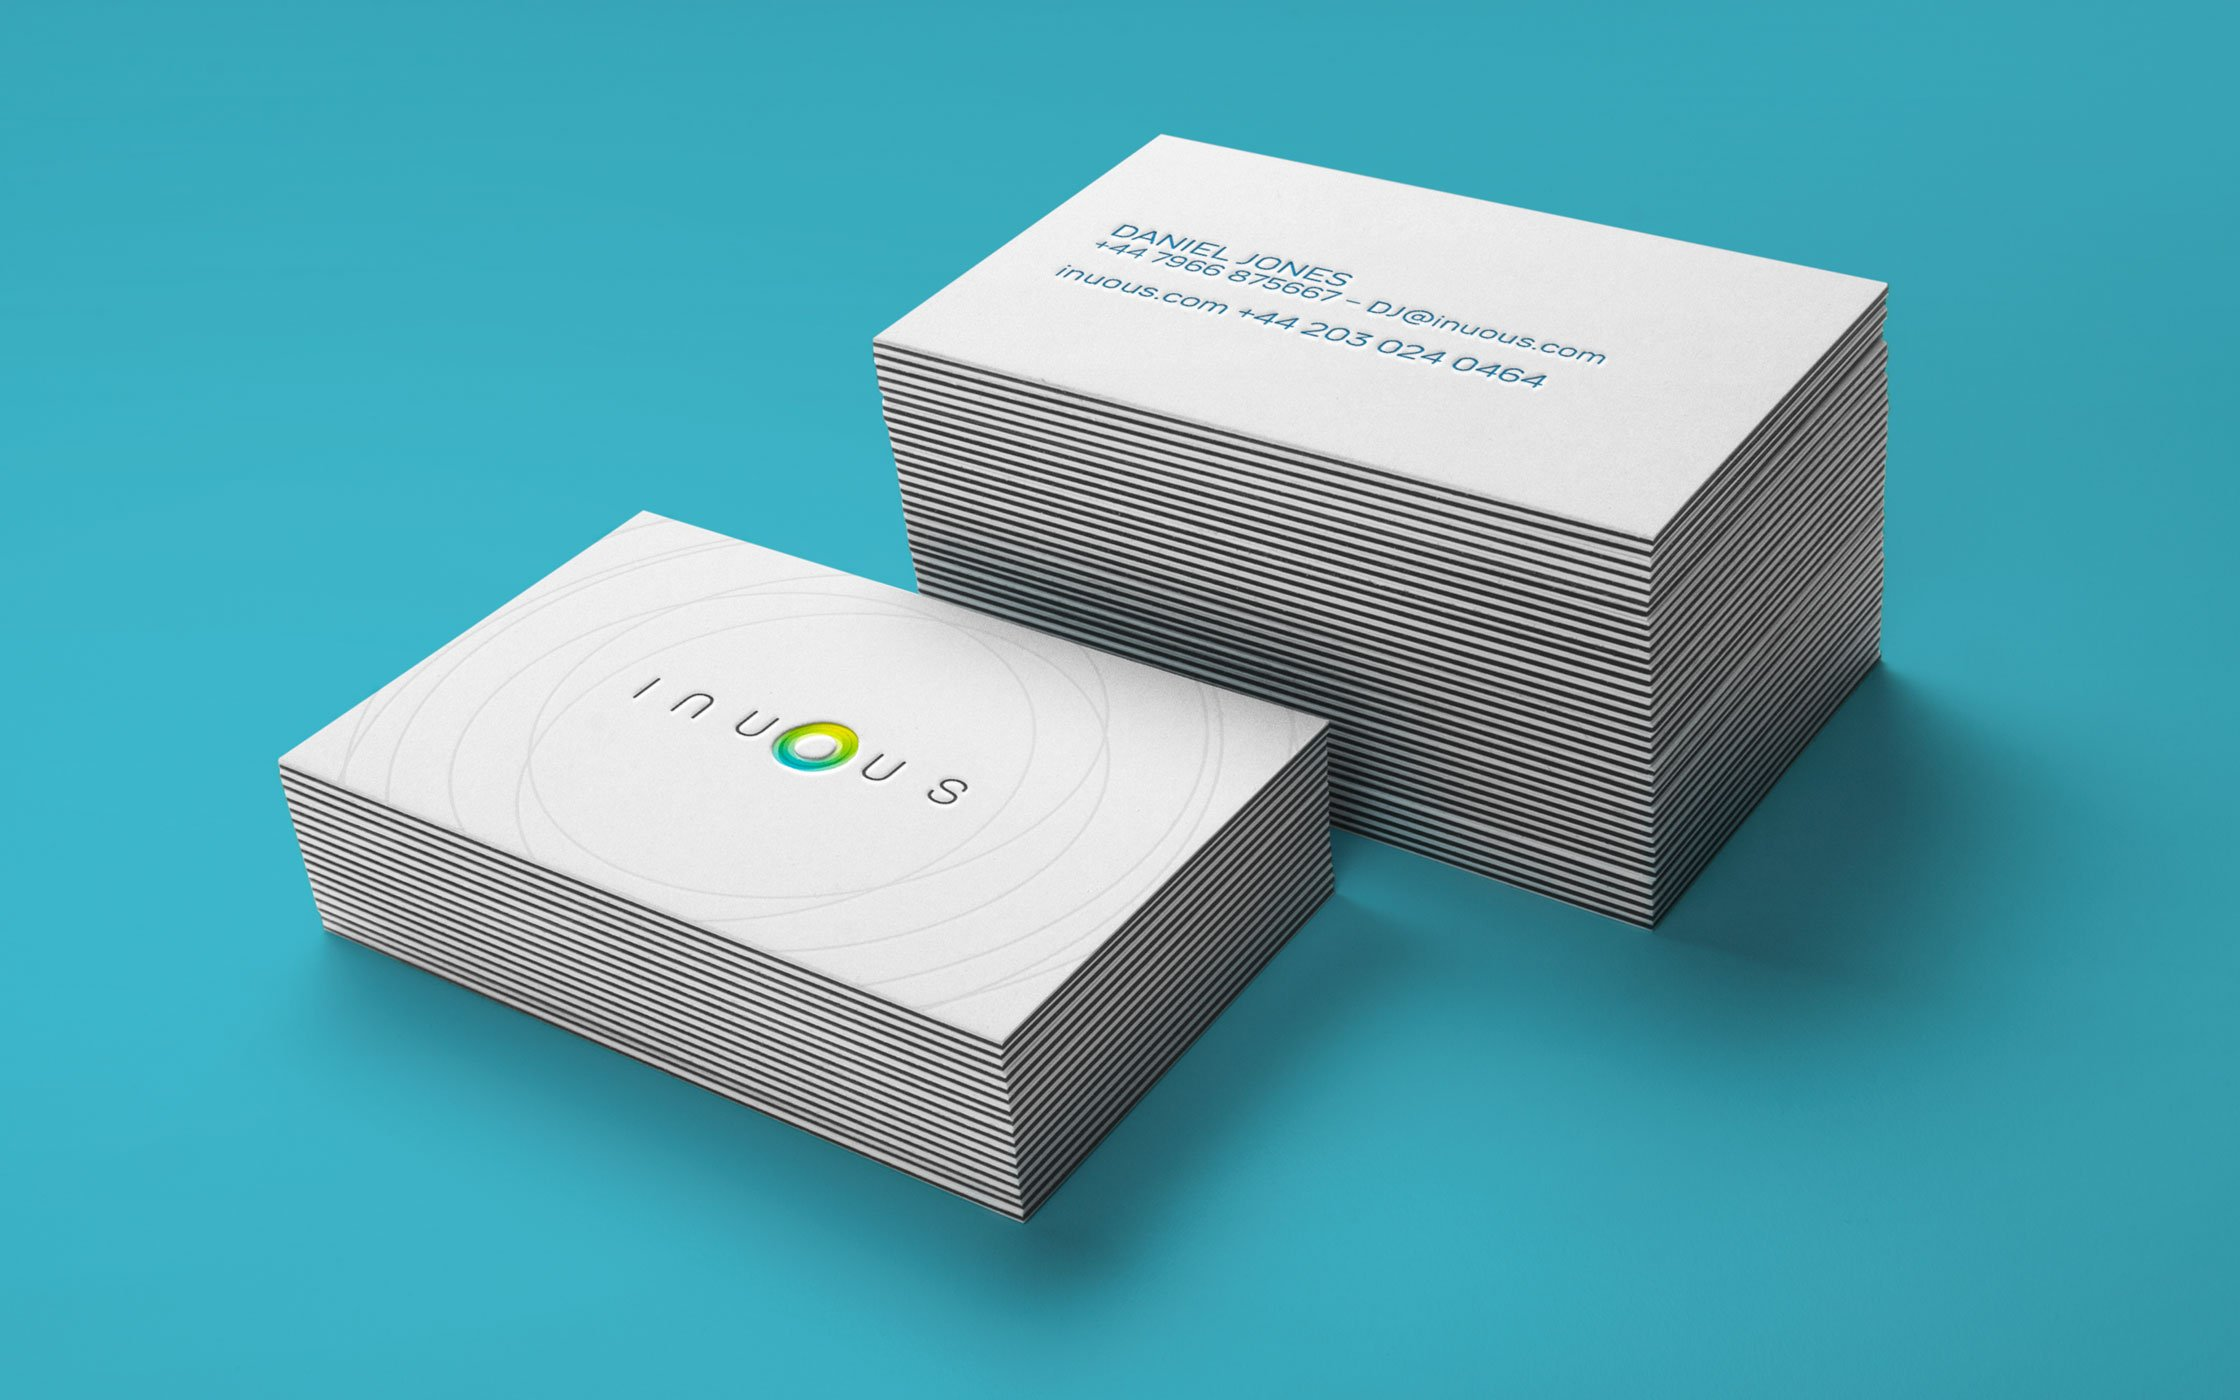 Business cards designed for Inuous